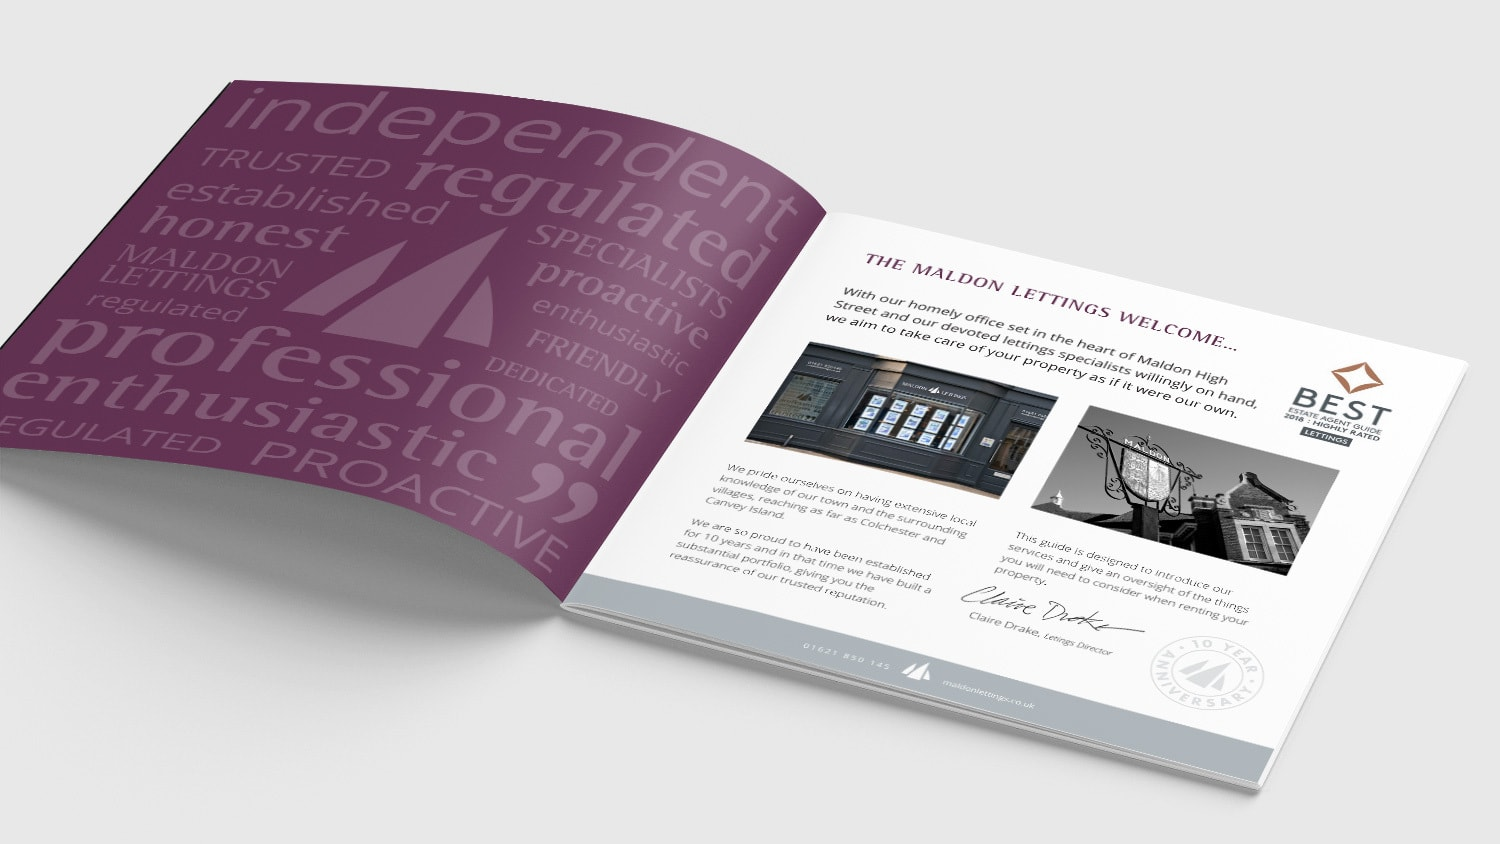 An open spread of Maldon Lettings brochure print design showing introduction page